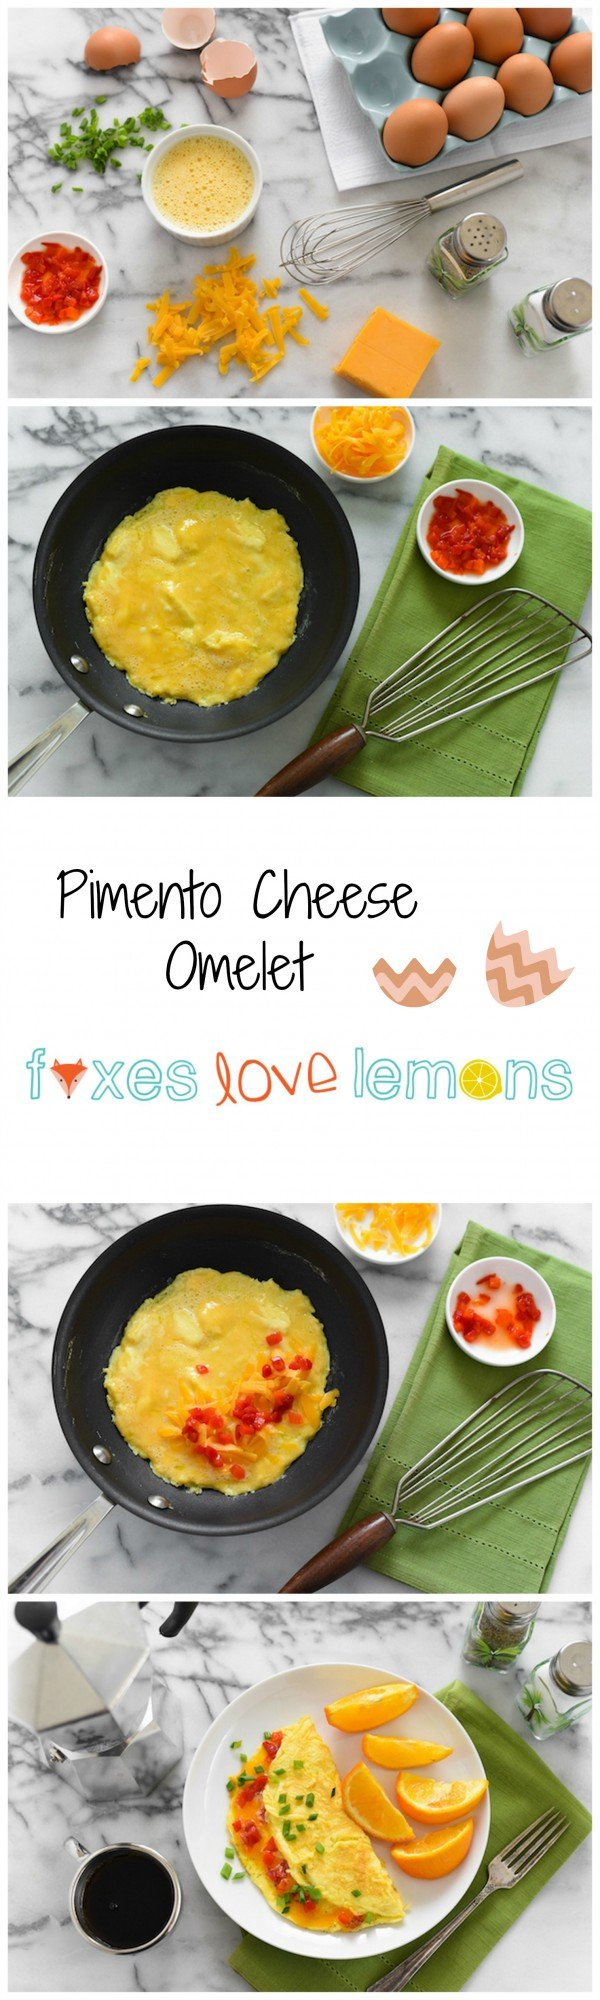 Pimento Cheese Omelet - A simple and flavorful omelet inspired by pimento cheese sandwiches! | foxeslovelemons.com